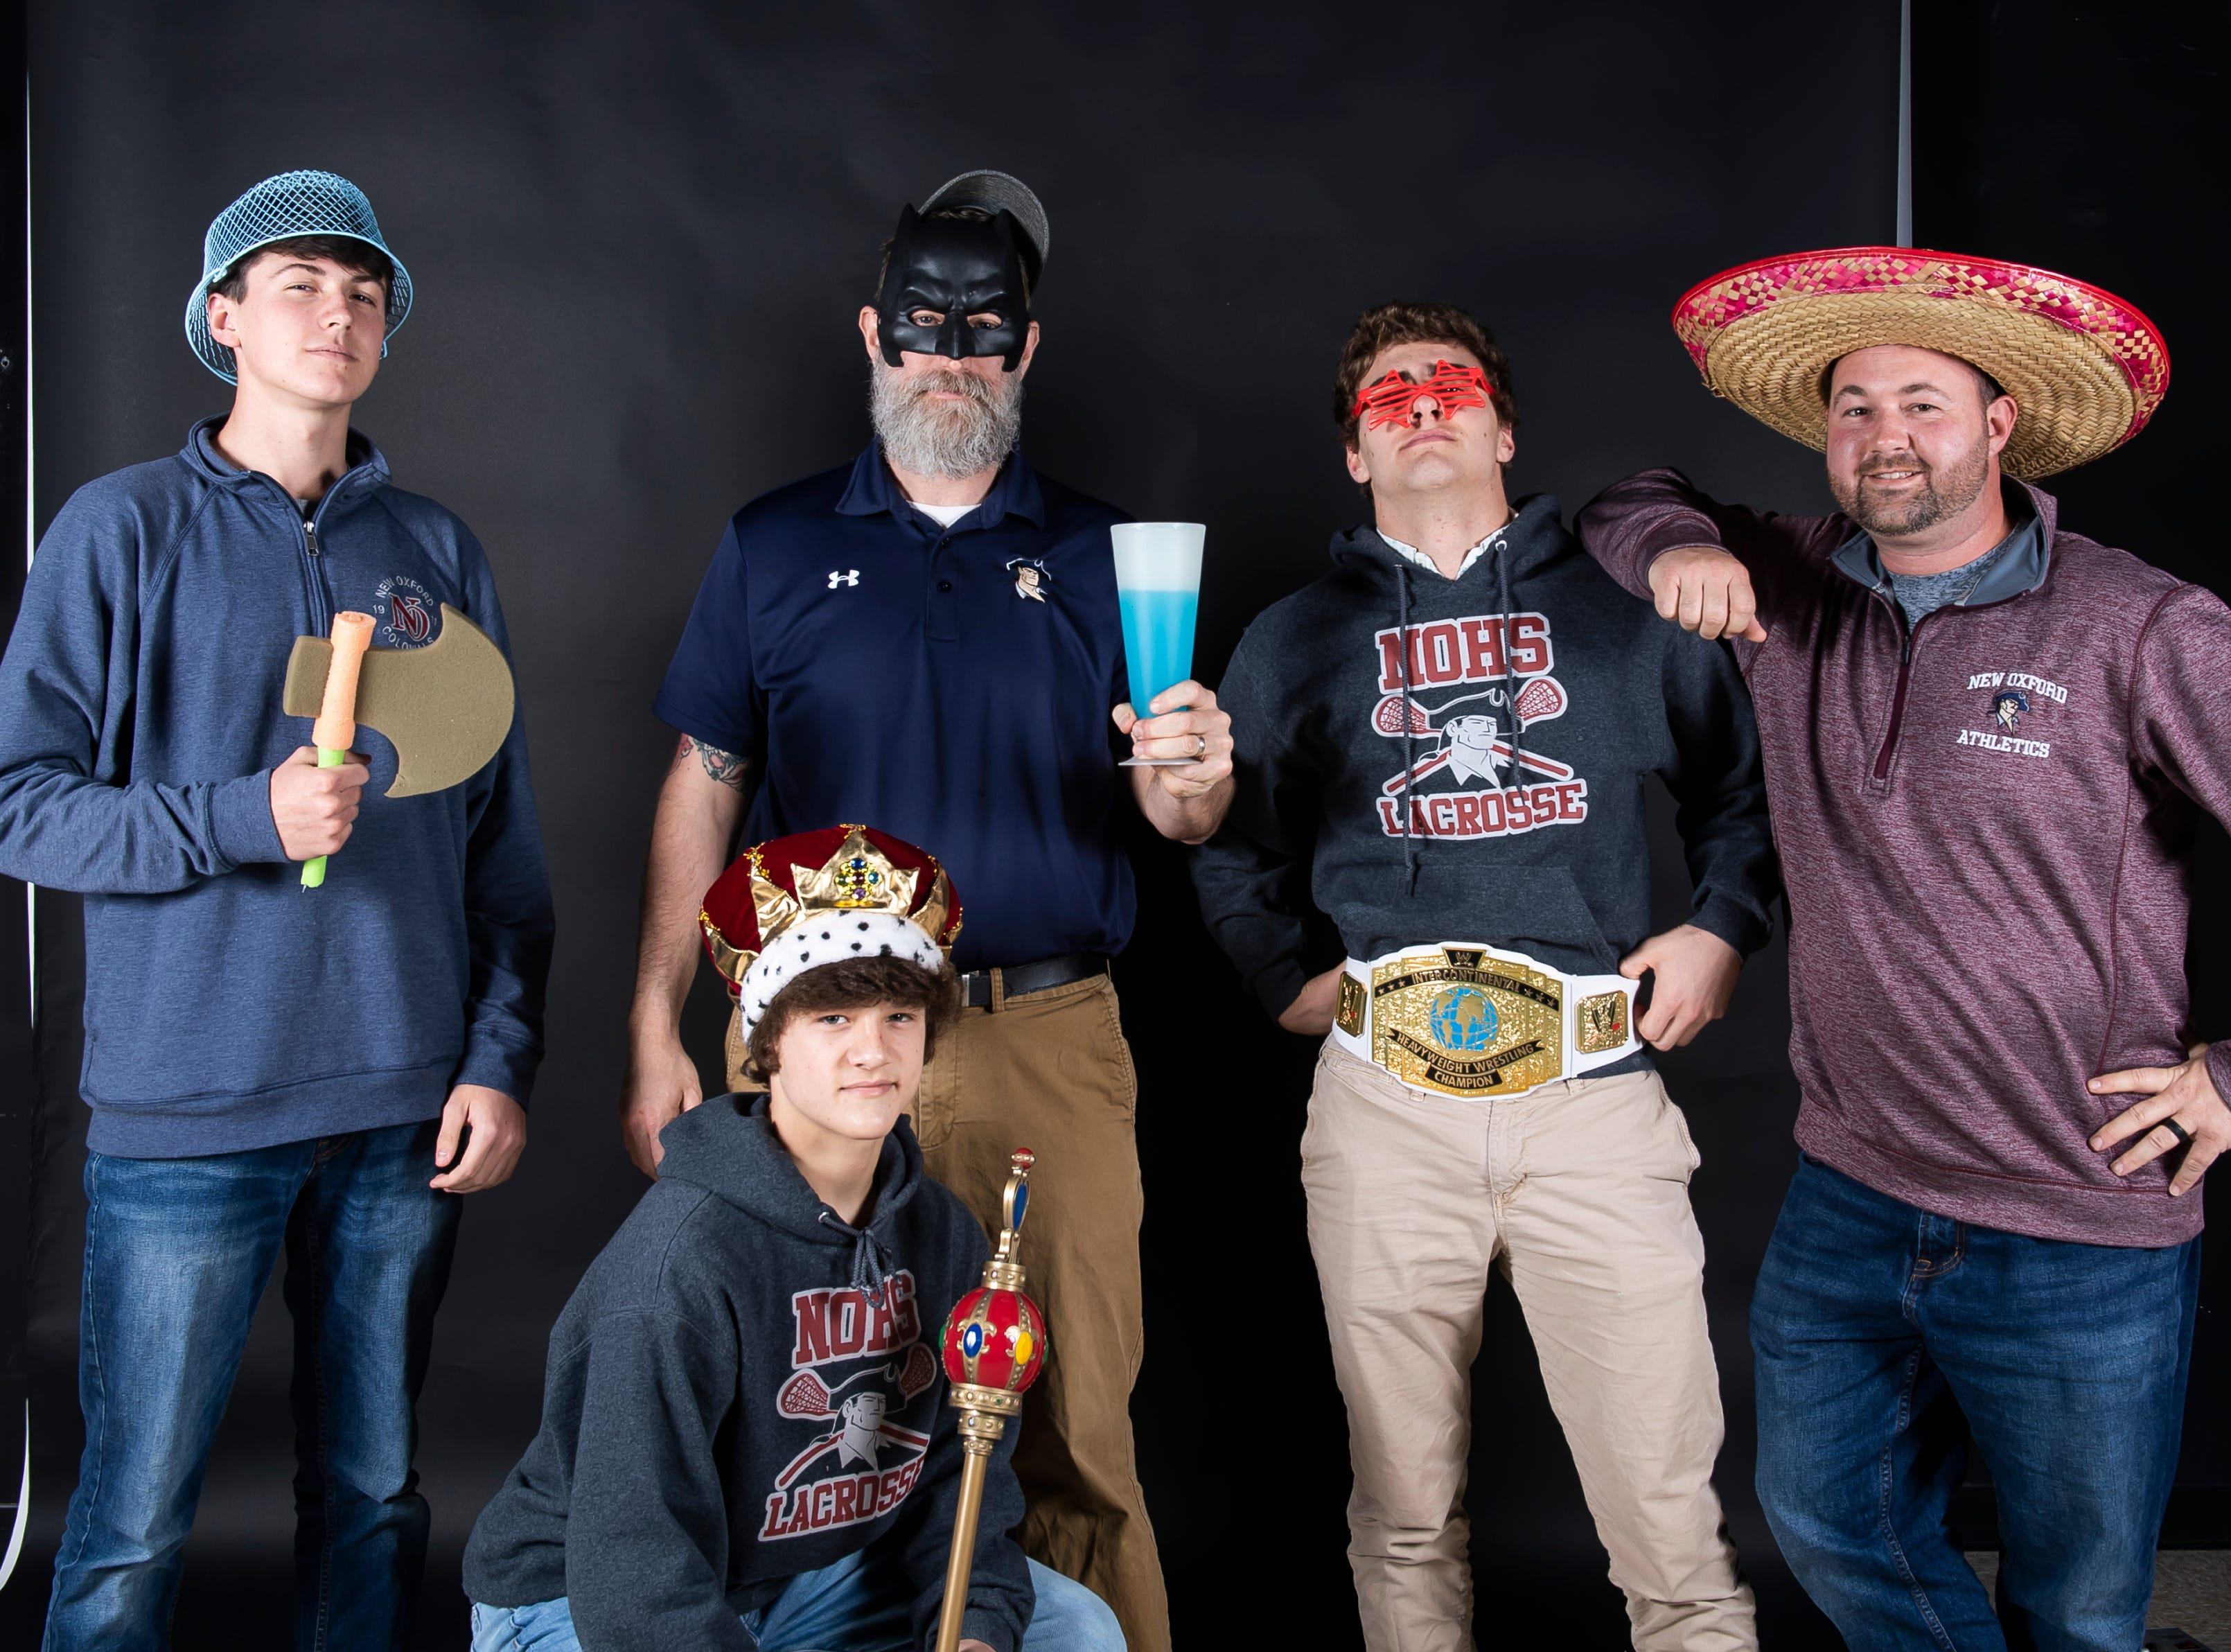 New Oxford boys lacrosse team members strike a pose in the GameTimePA photo booth during spring sports media day in York Sunday, March 10, 2019.